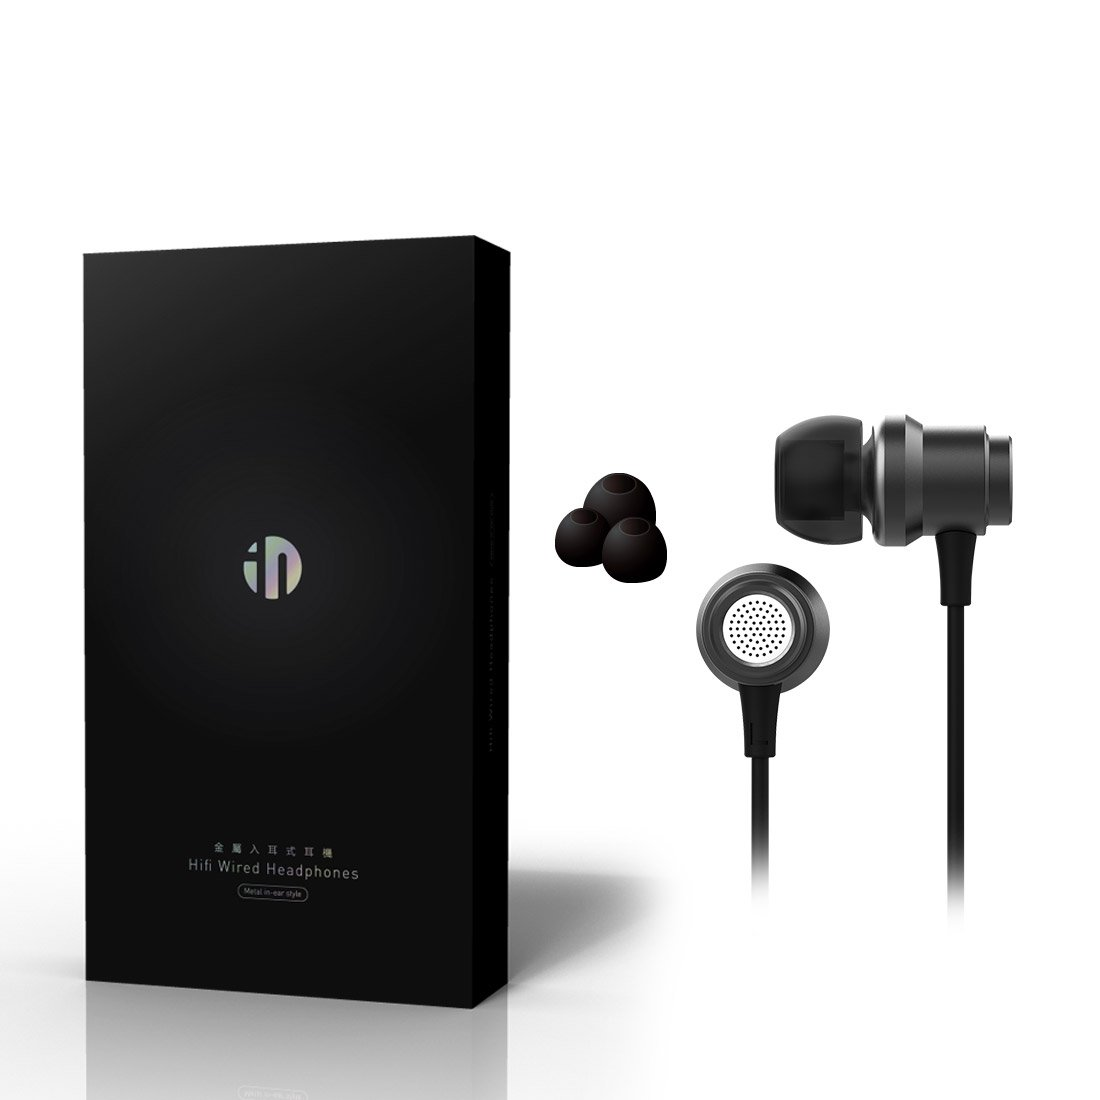 Inphic IN6 In-ear Headphones Earphones Noise Isolating Heavy Deep Bass Earbuds with Microphone for iPhone, iPad, iPod, MP3 Player, Samsung Galaxy Smartphone PC Laptop and more, Classic Black